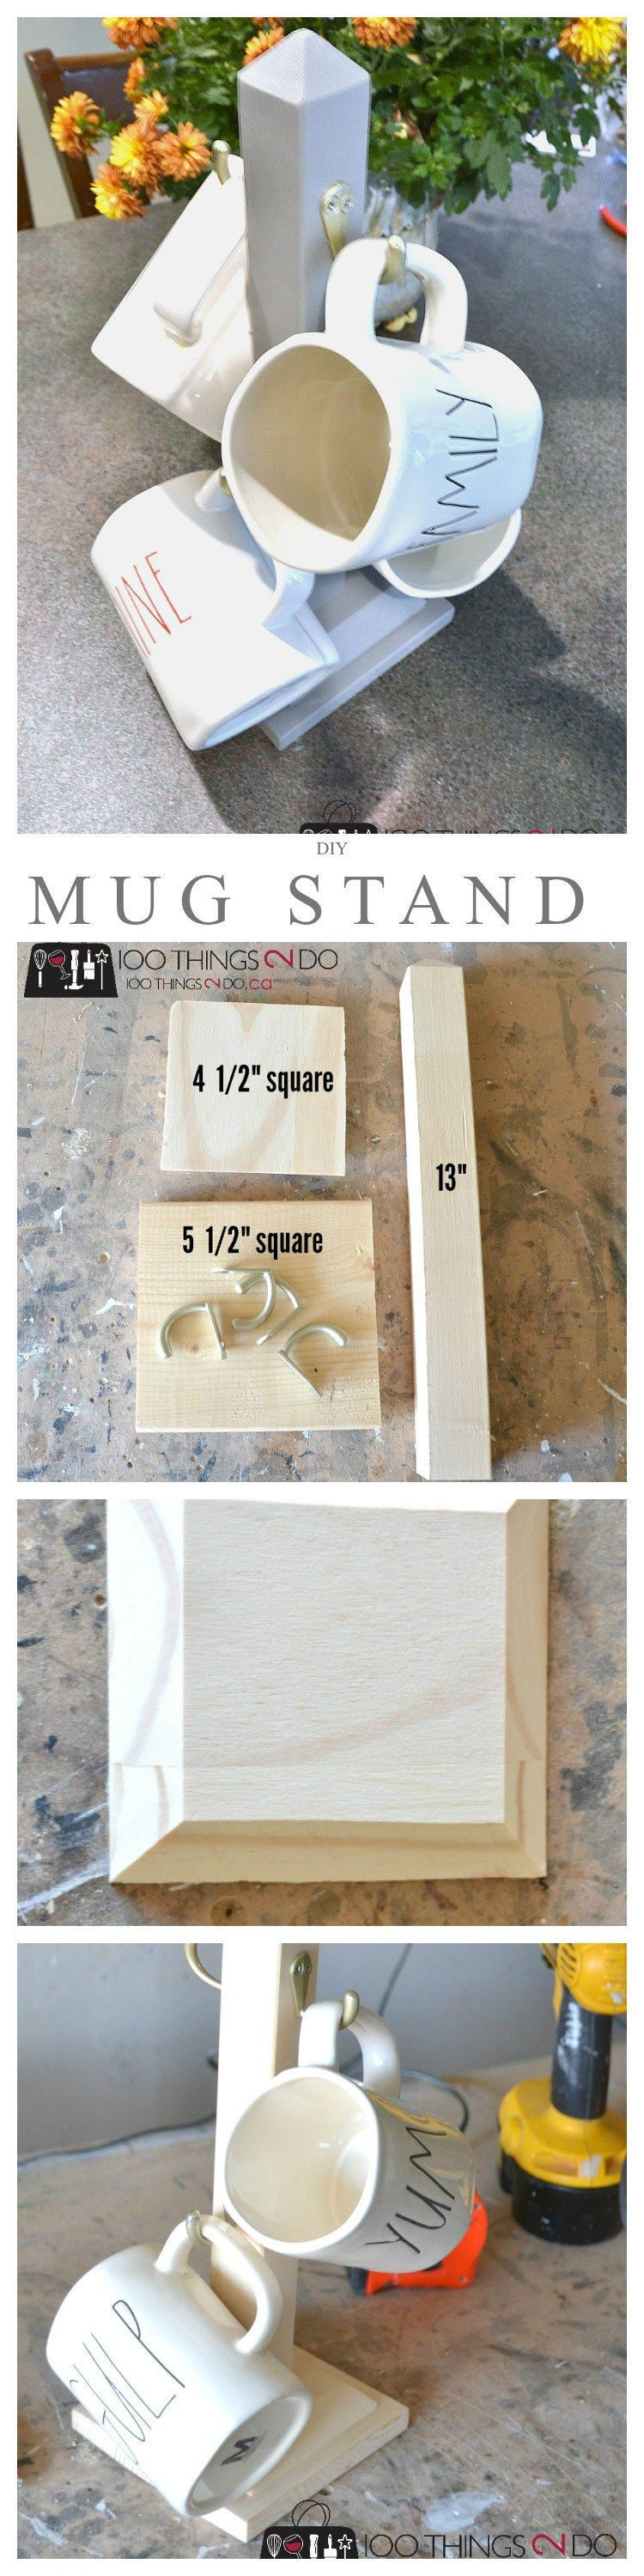 DIY Mug Stand Scrap wood projects and Coffee cup holder